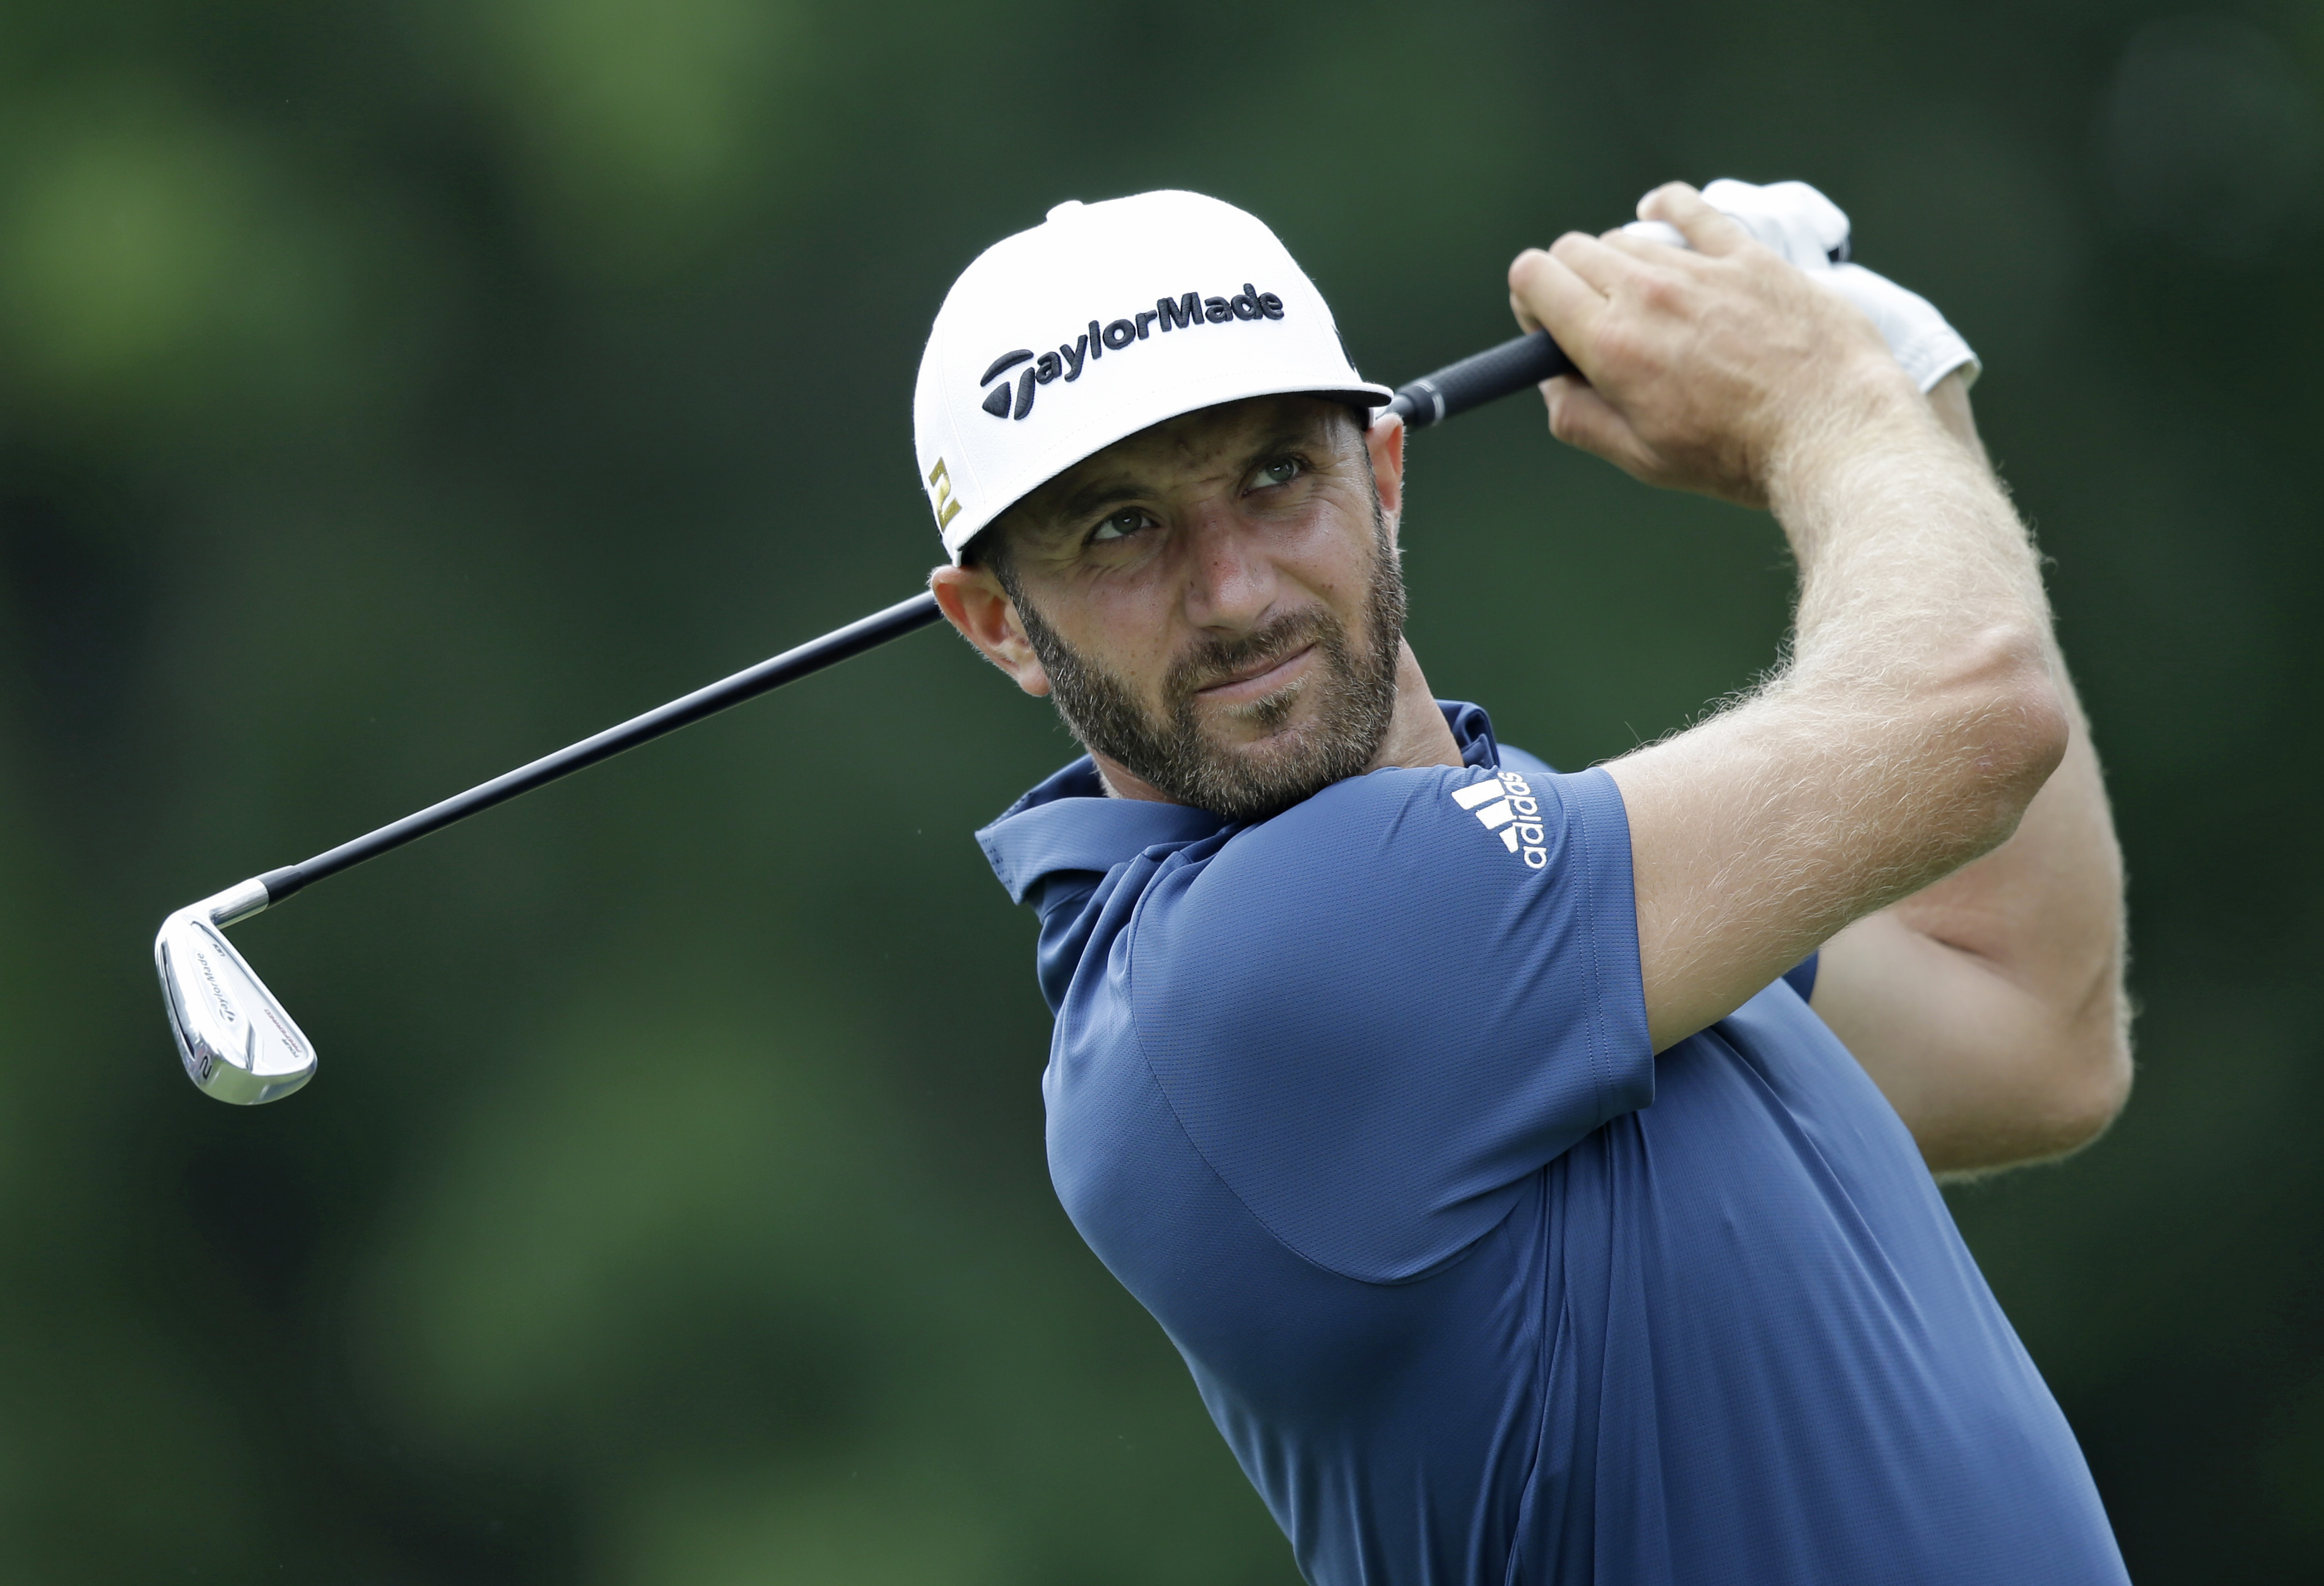 FILE - In this July 1, 2016, file photo, Dustin Johnson tees off on the third hole during the second round of the Bridgestone Invitational golf tournament at Firestone Country Club in Akron, Ohio. The British Open is scheduled for July 1417, 2016, at Roya